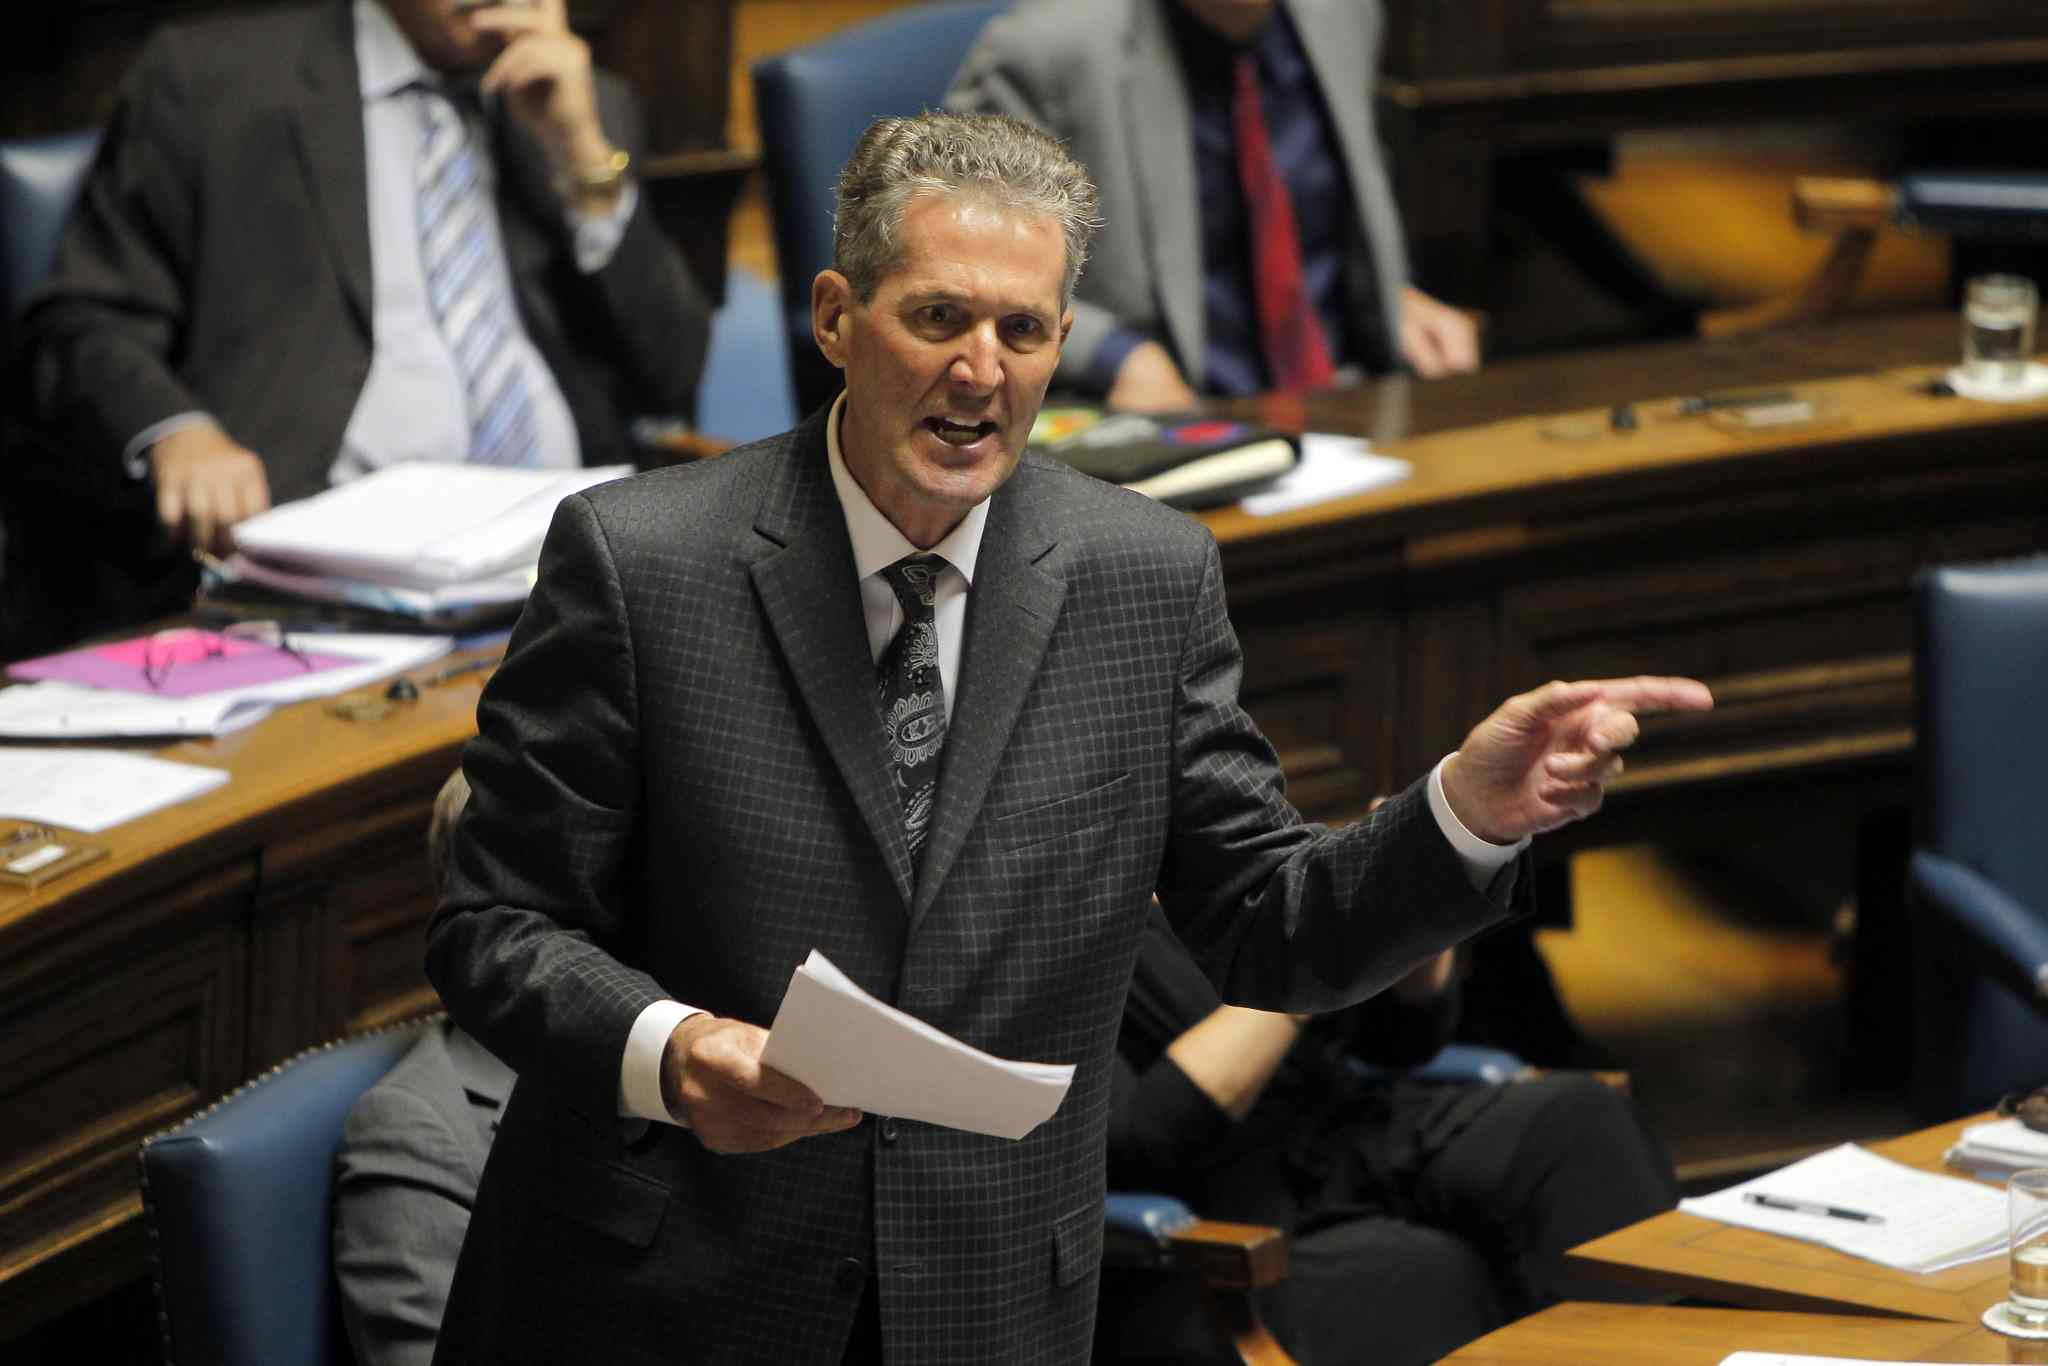 Brian Pallister in the house during question period.